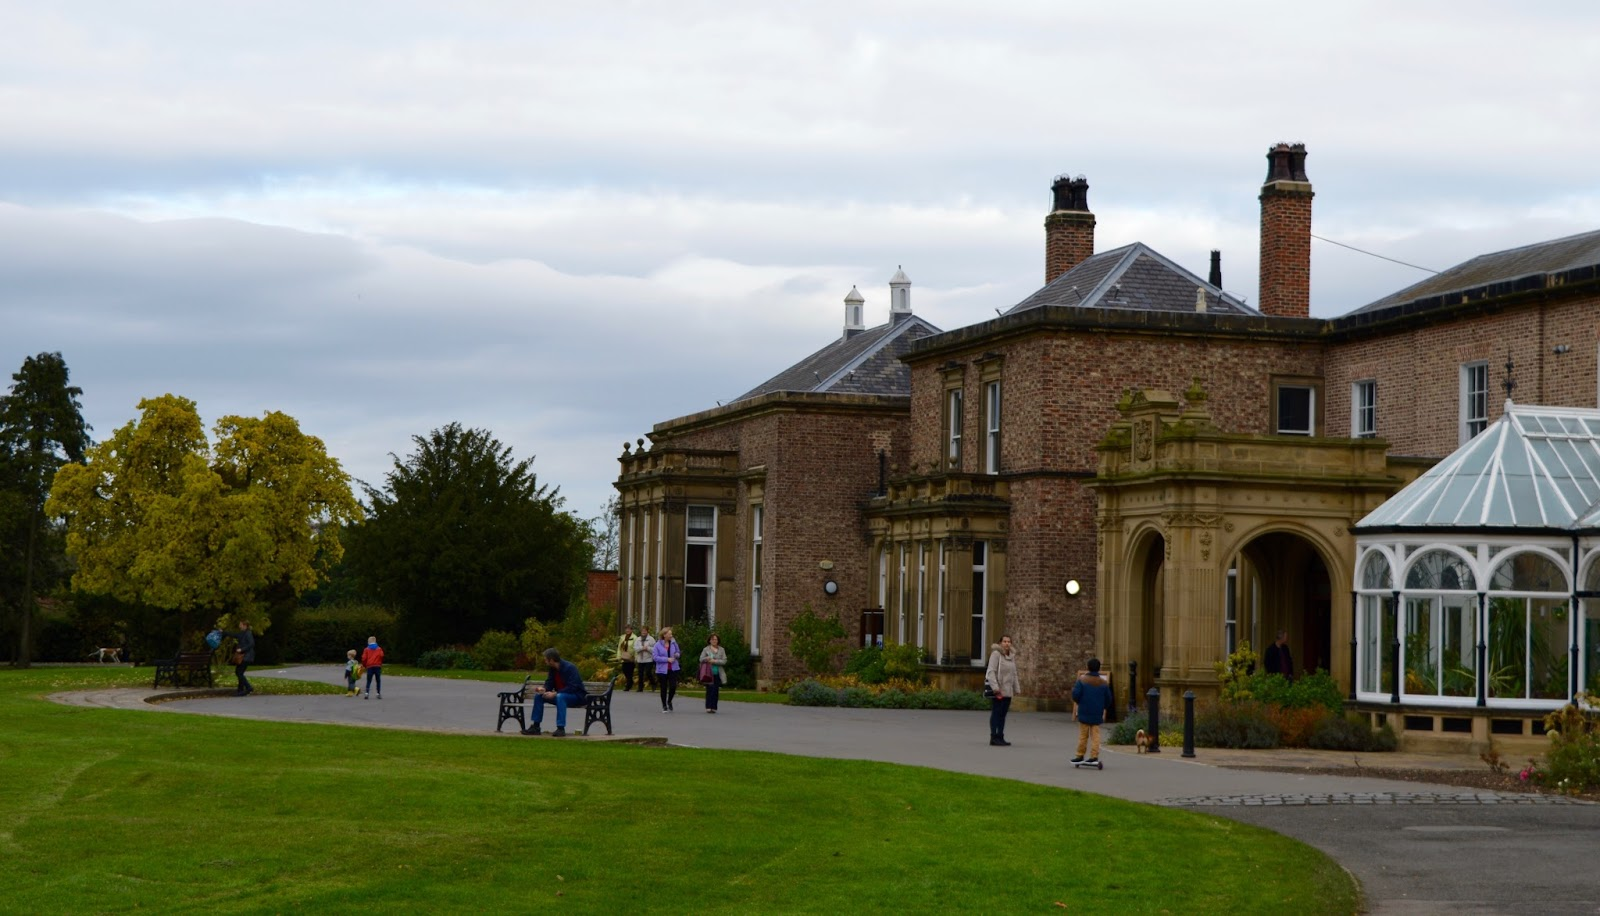 Half Term Hocus Pocus at Preston Park | The North East's very own Diagon Alley - museum